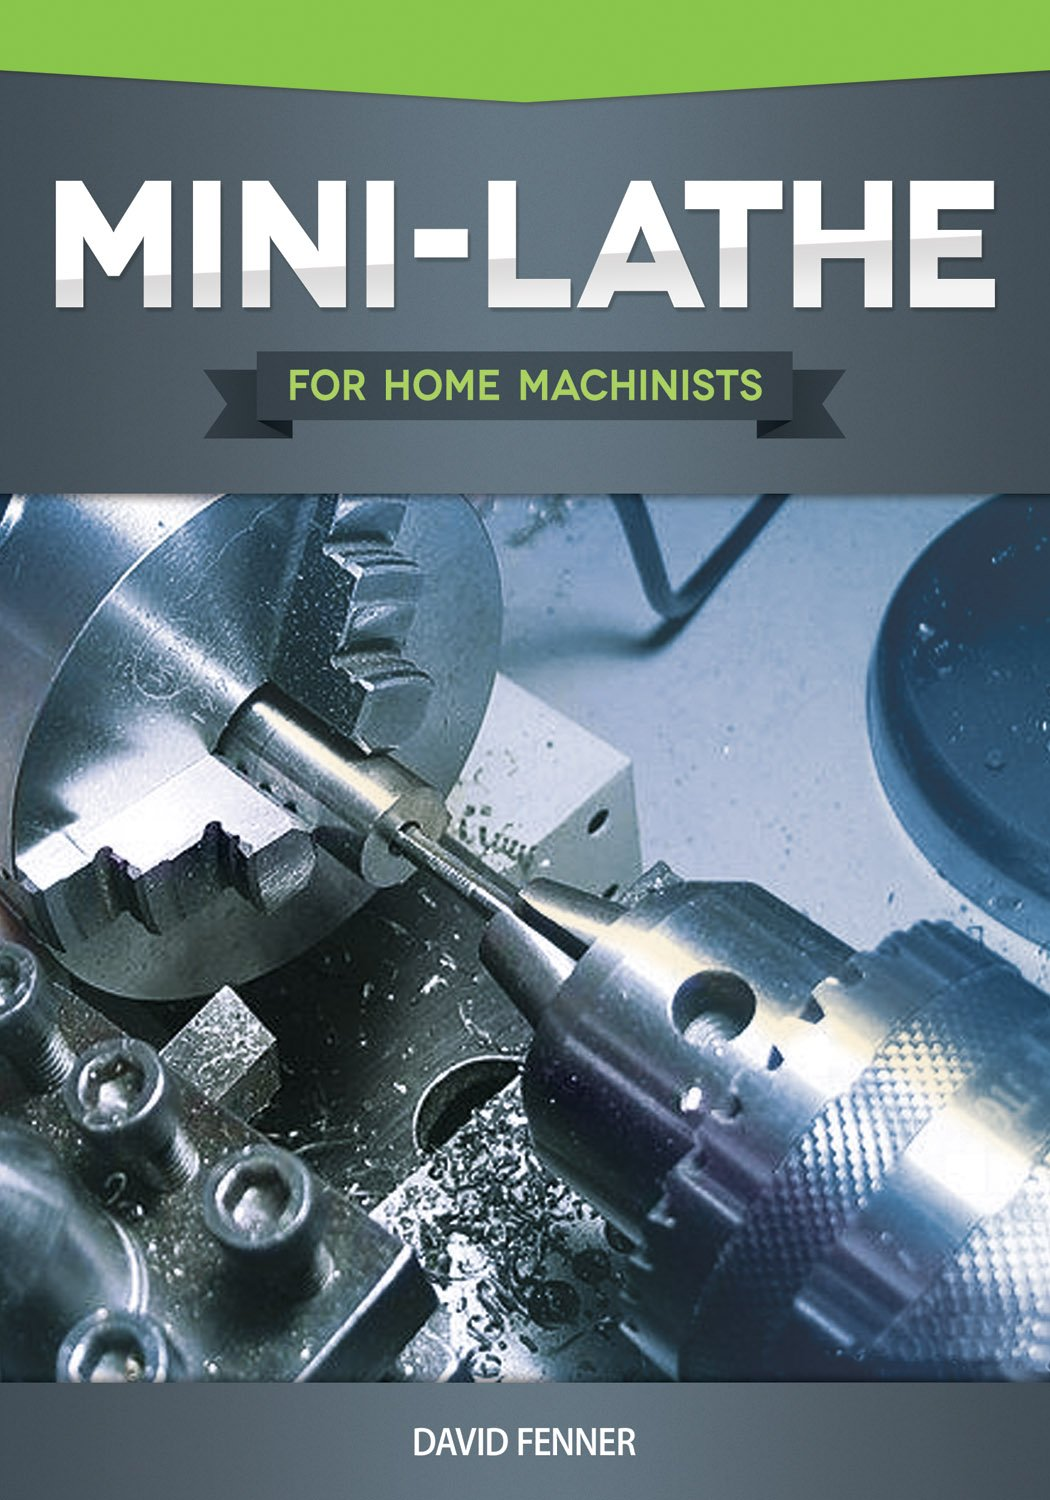 Mini-Lathe for Home Machinists (Fox Chapel Publishing) An In-Depth Look at the Different Components of Your Small Metal Lathe, Set Up, Tuning, How to Use the Accessories, & Hundreds of Illustrations